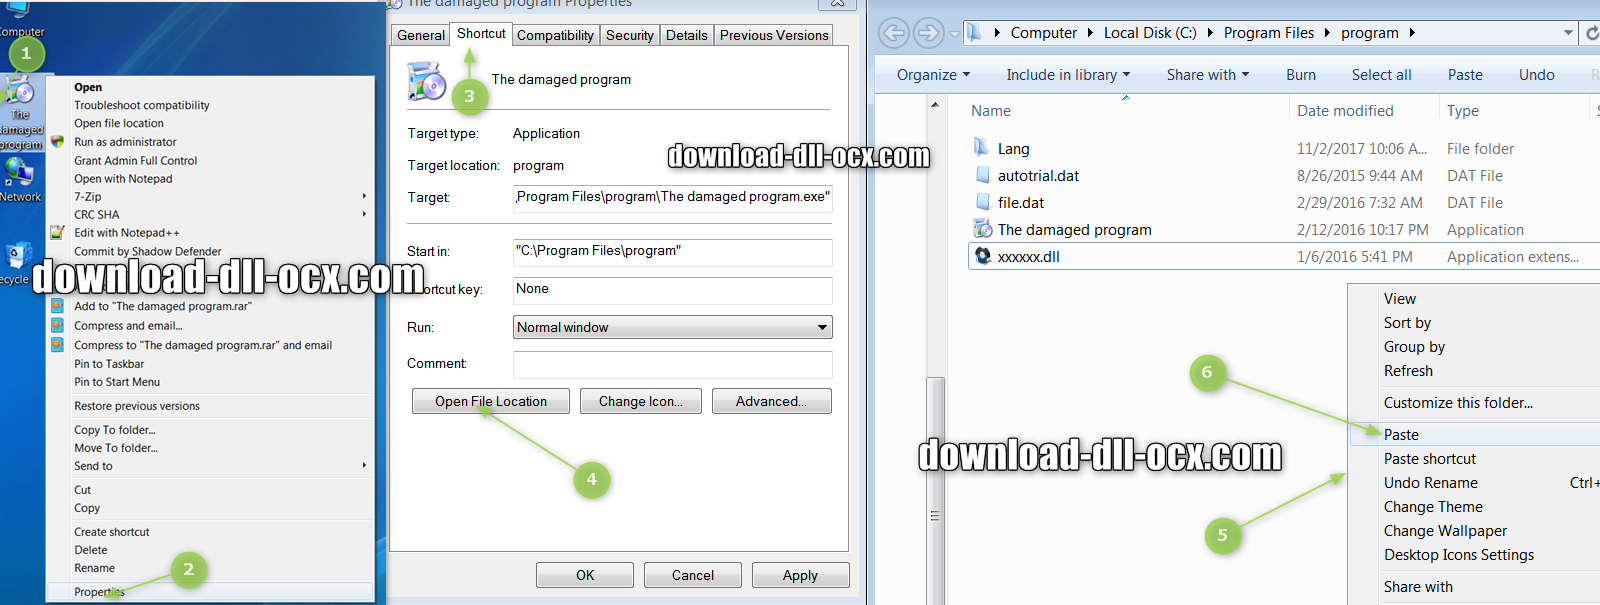 how to install qfaservices.dll file? for fix missing